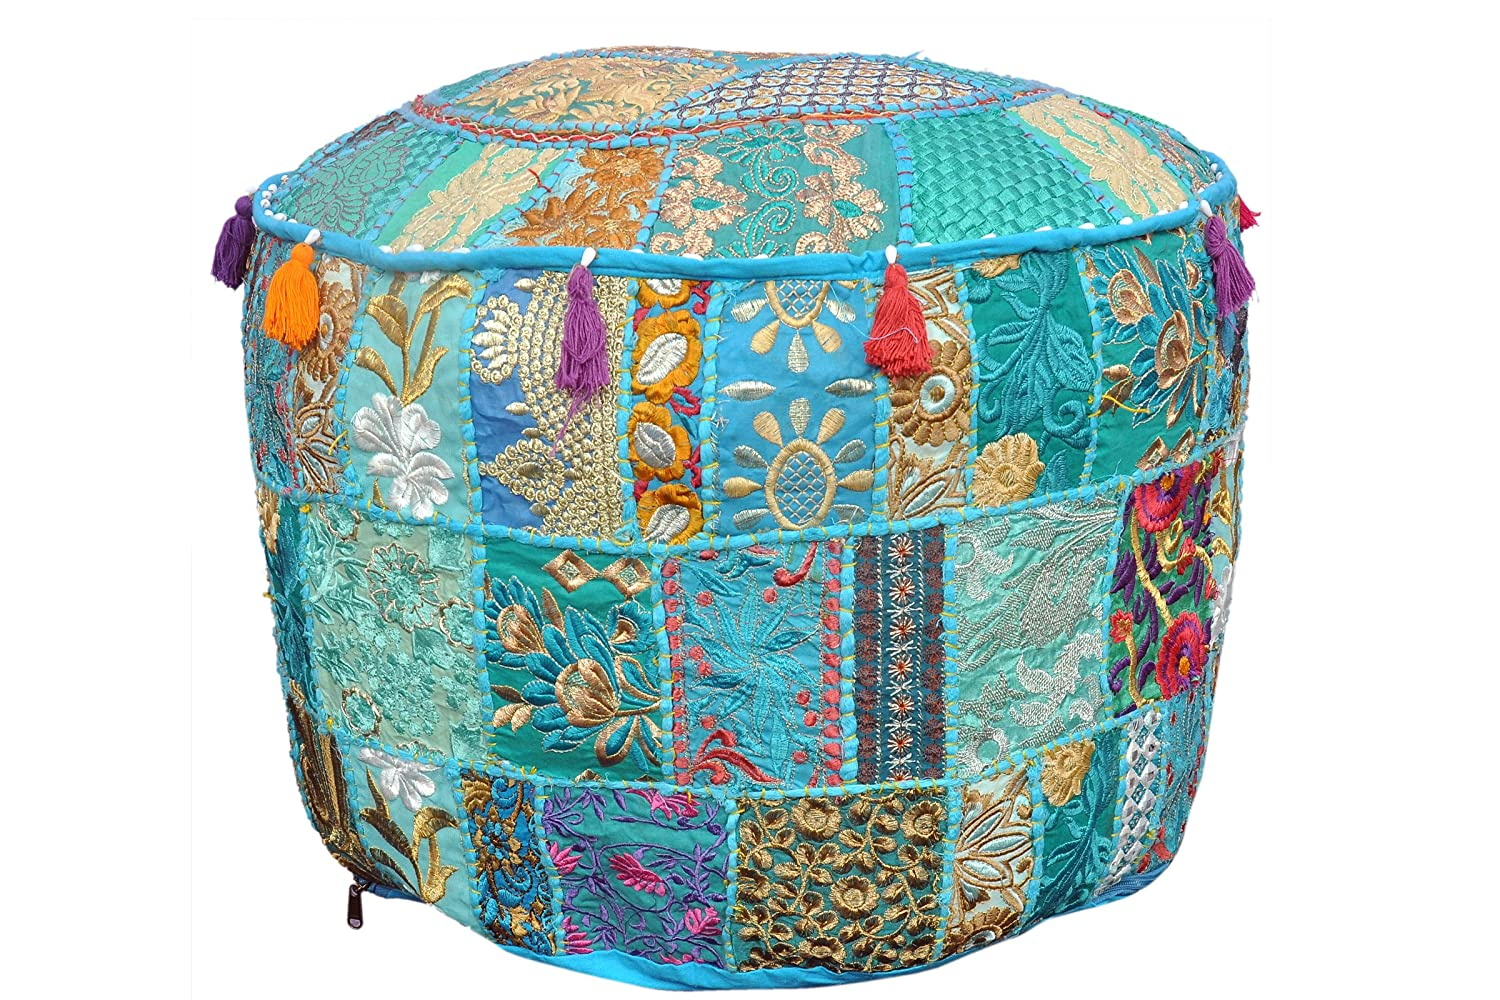 Home Decorative Cotton Indian Ethnic Floral Patchwork Embroidered Round Ottoman Pouf Cover Green Foot Stool Footstool Floor Cushion Cover Home Decor New Year Special By Marudhara Fashion MDL00007